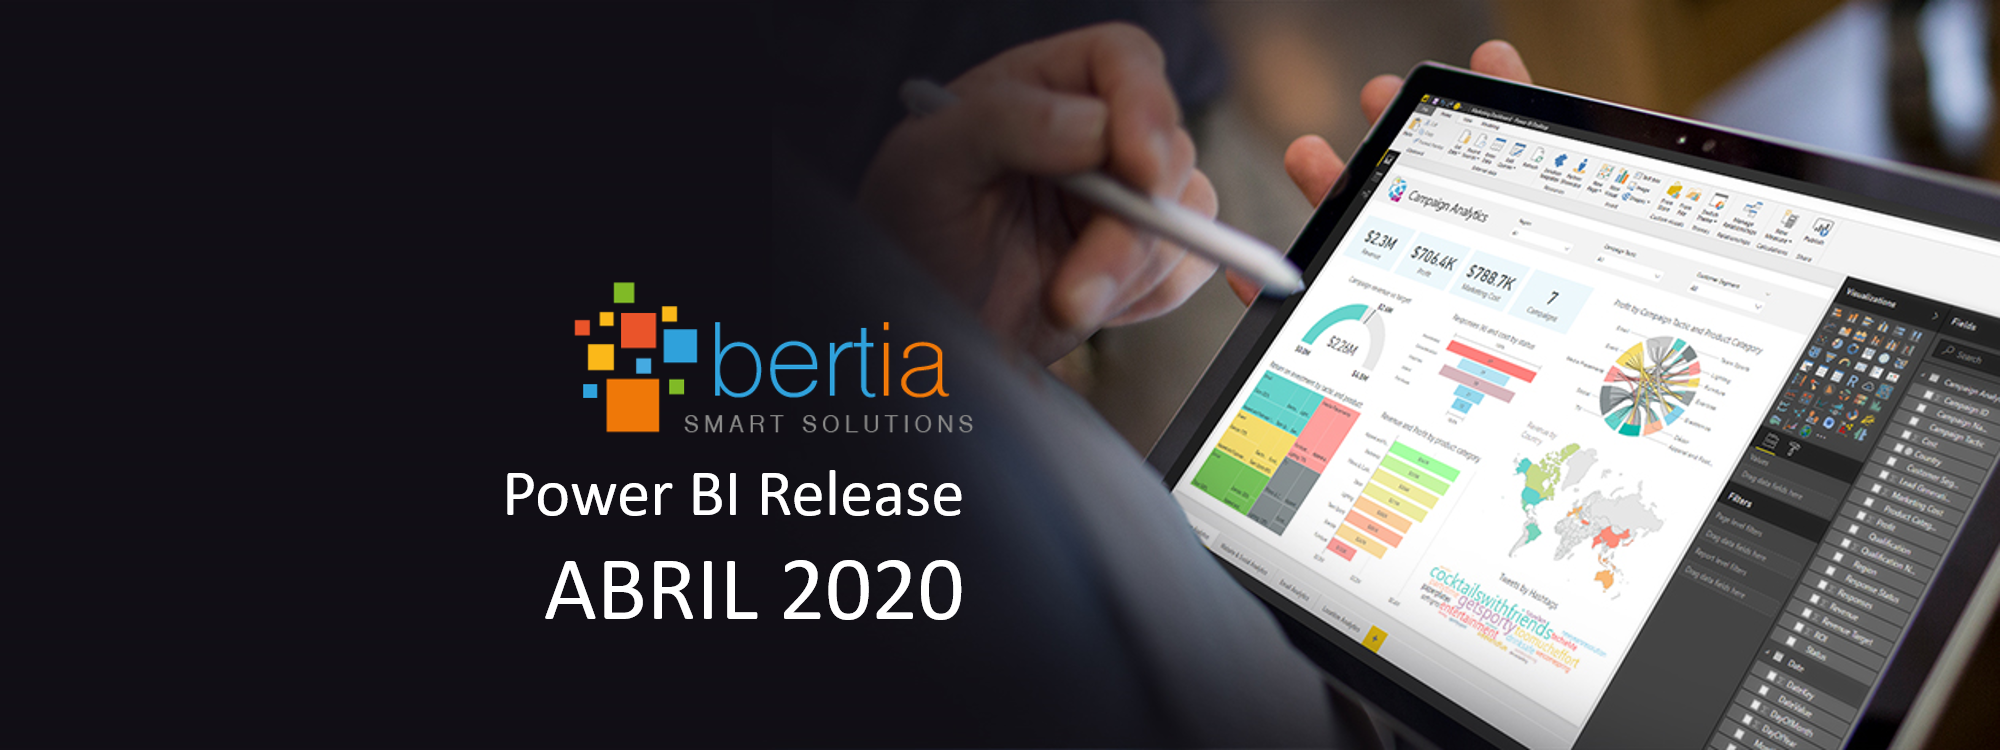 Actualización Power BI Abril 2020